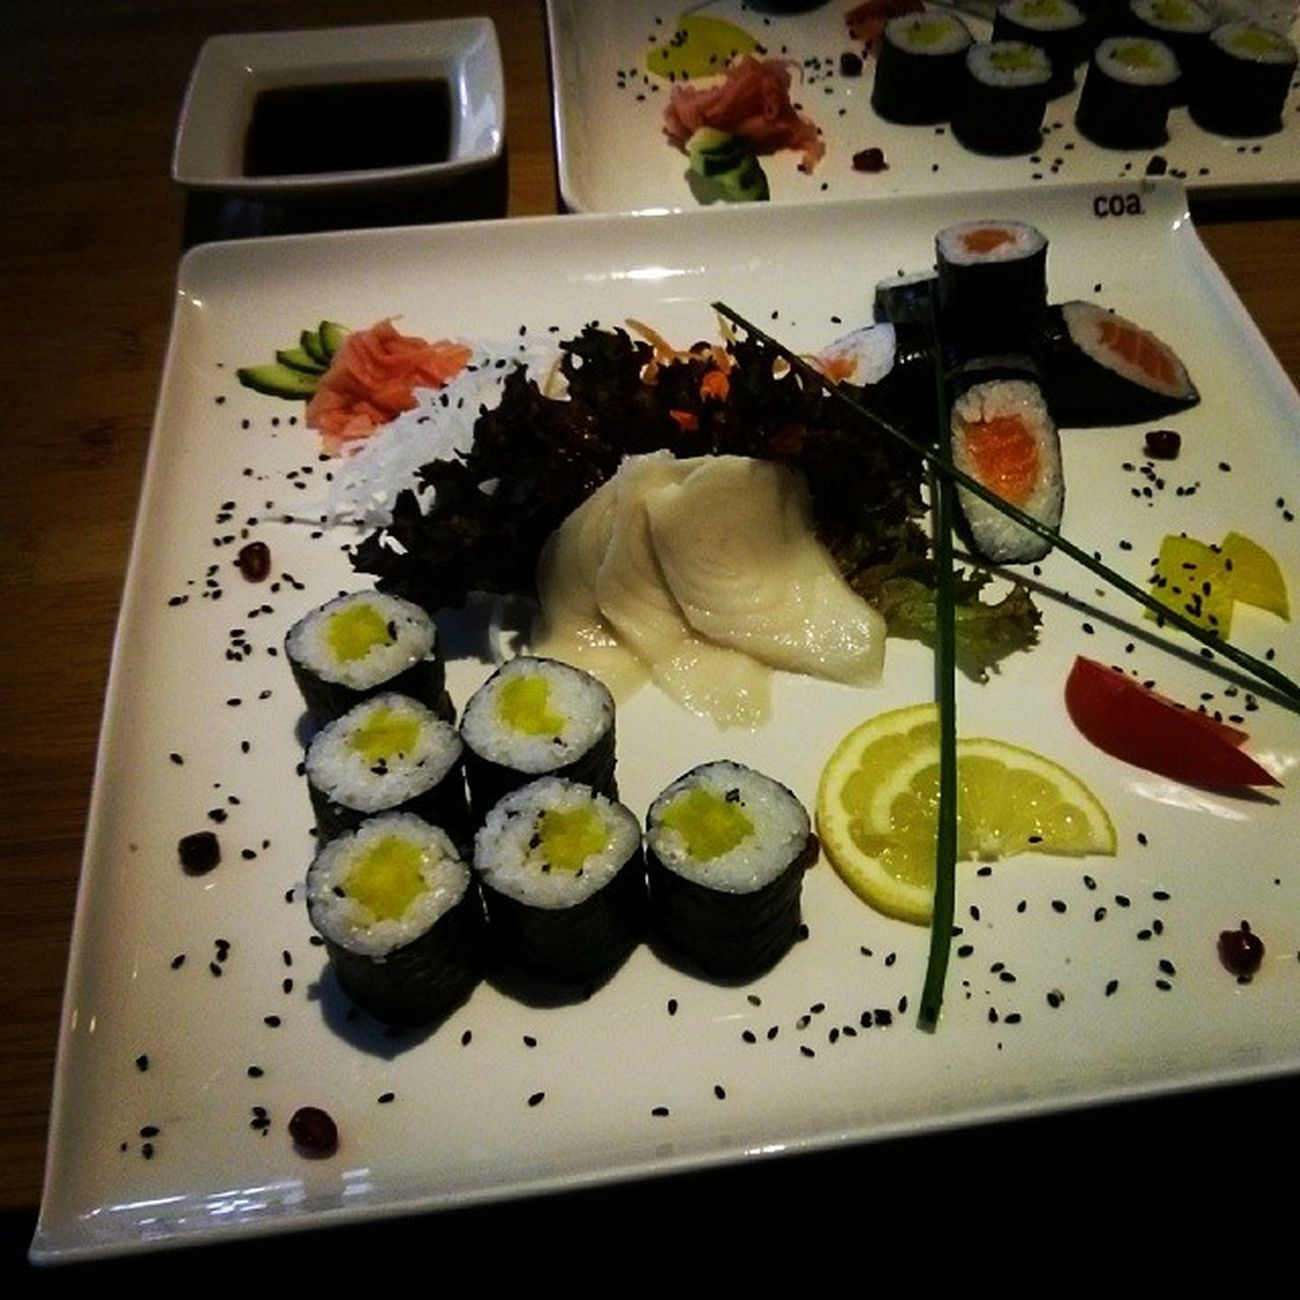 Worklunch Lunch Sushi Coa prague praha yummy